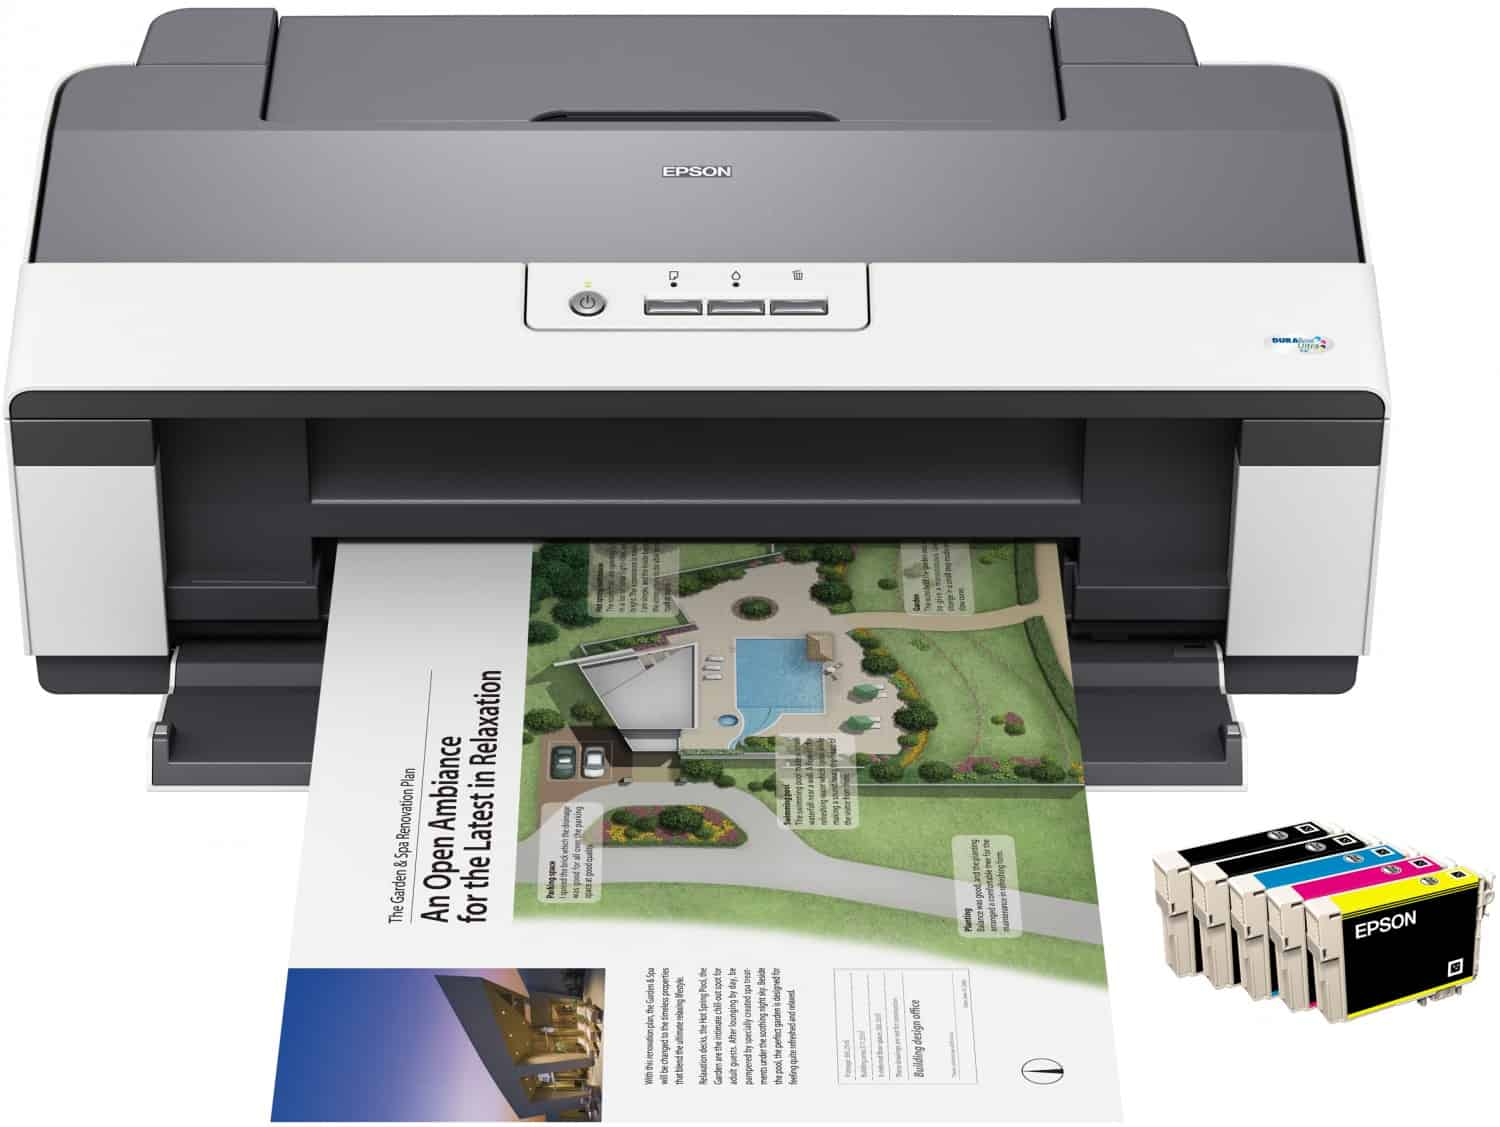 epson workforce 1100